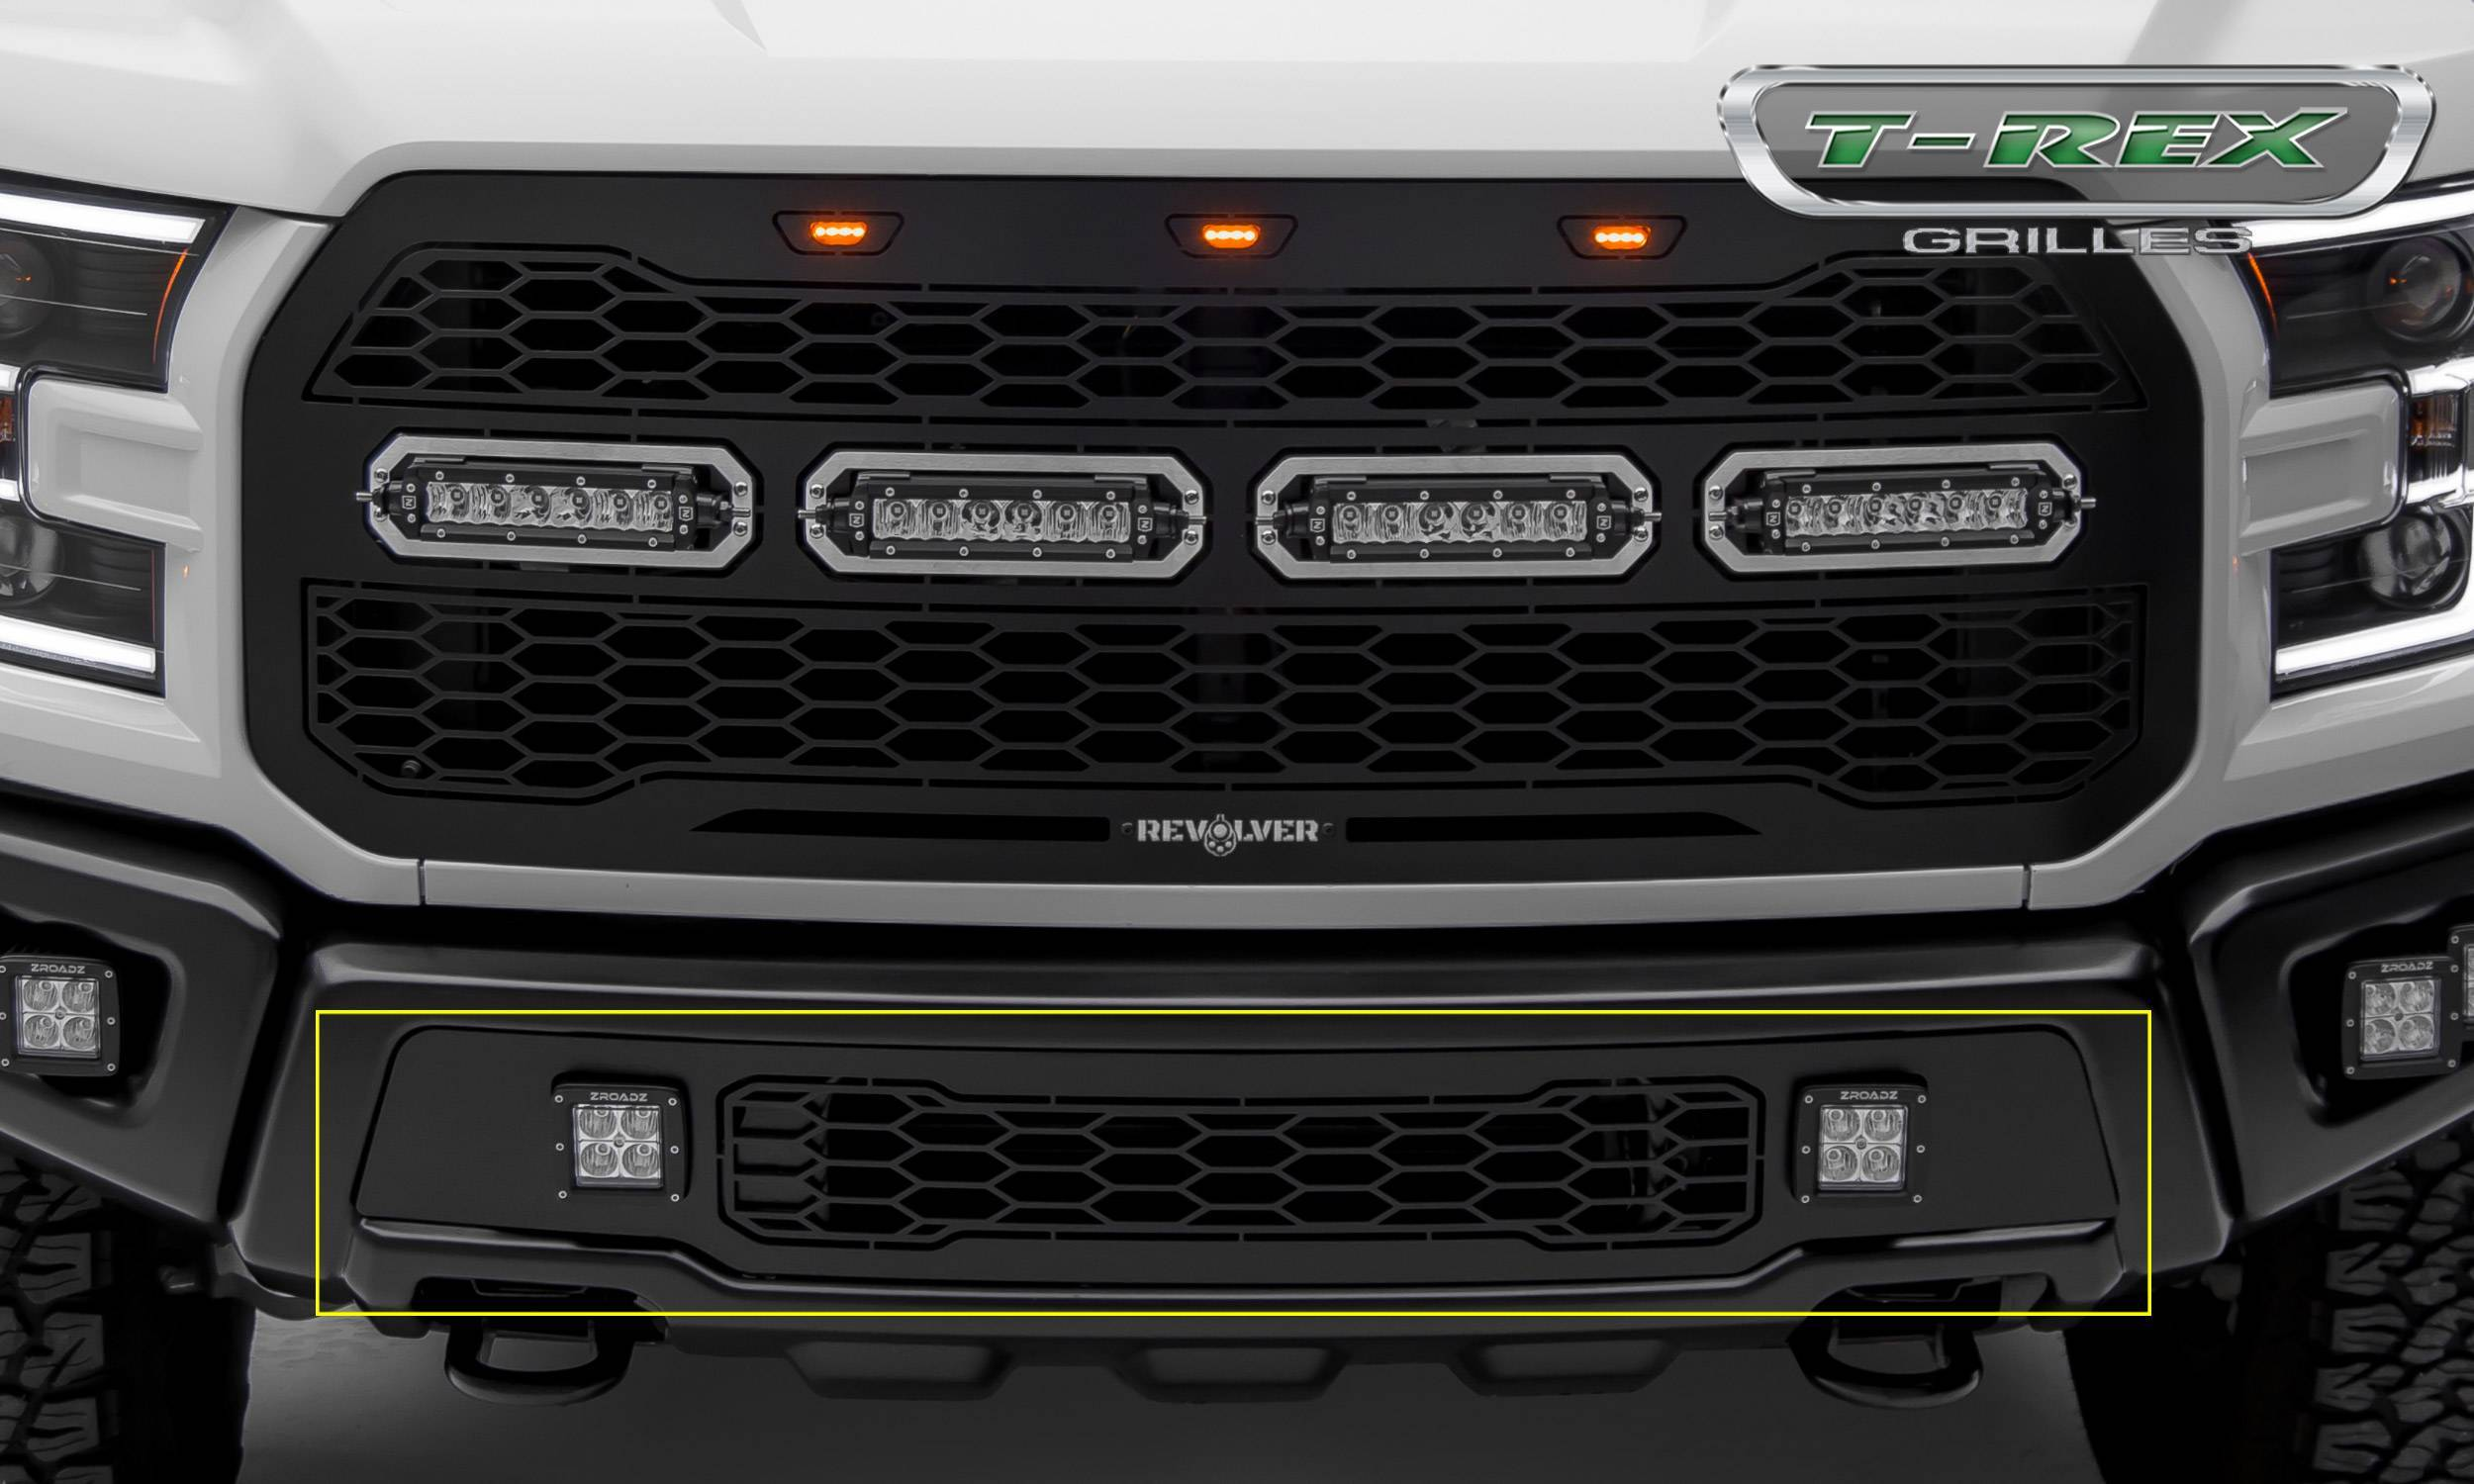 T-REX Grilles - 2017-2020 F-150 Raptor SVT Revolver Bumper Grille, Black, 1 Pc, Replacement with (2) 3 Inch LED Cube Lights - PN #6525661